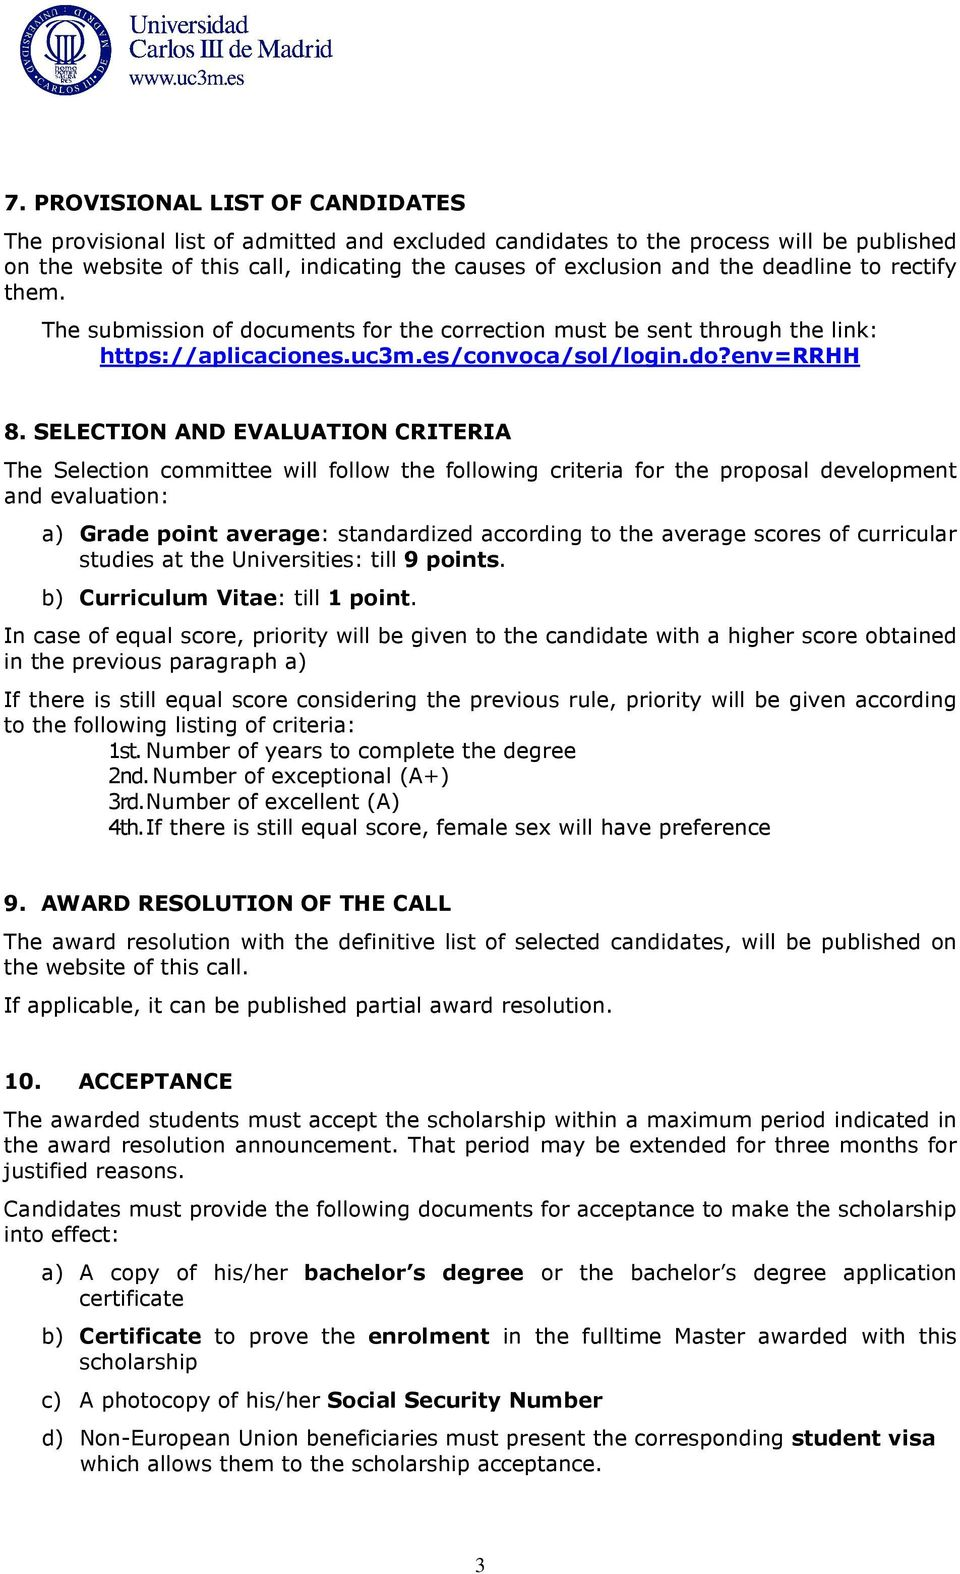 SELECTION AND EVALUATION CRITERIA The Selection committee will follow the following criteria for the proposal development and evaluation: a) Grade point average: standardized according to the average